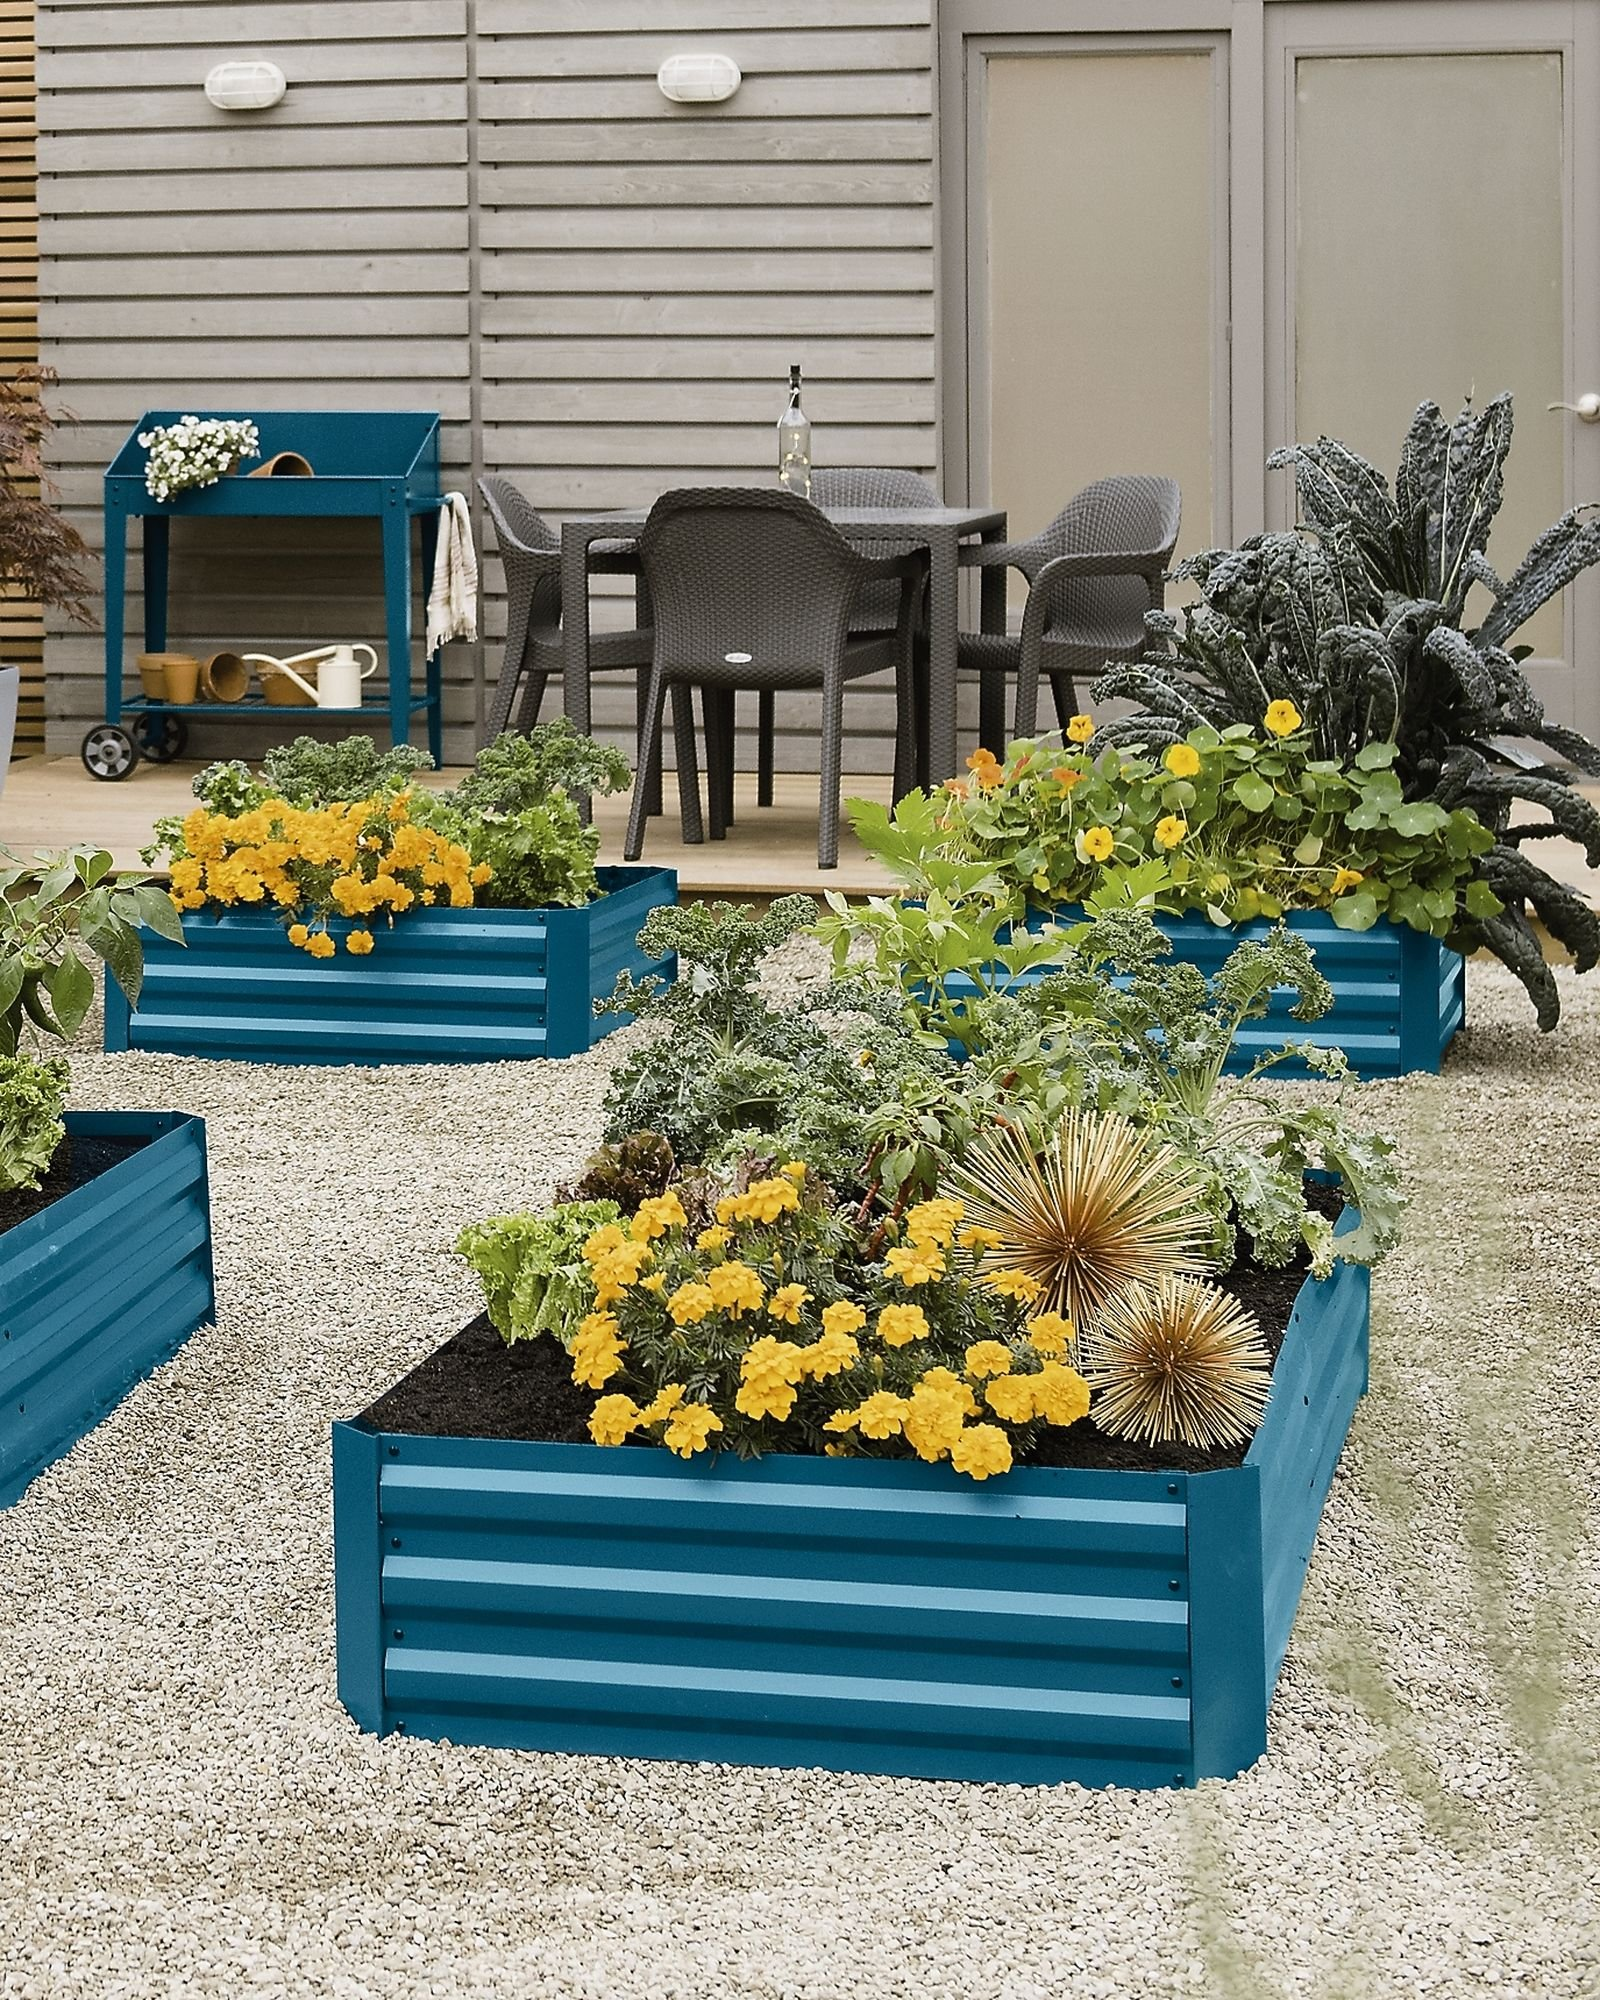 "Gardener's Supply Company Corrugated Metal Powder-coated steel Raised Bed, 34"" x 68"" Blue by Gardener's Supply Company"